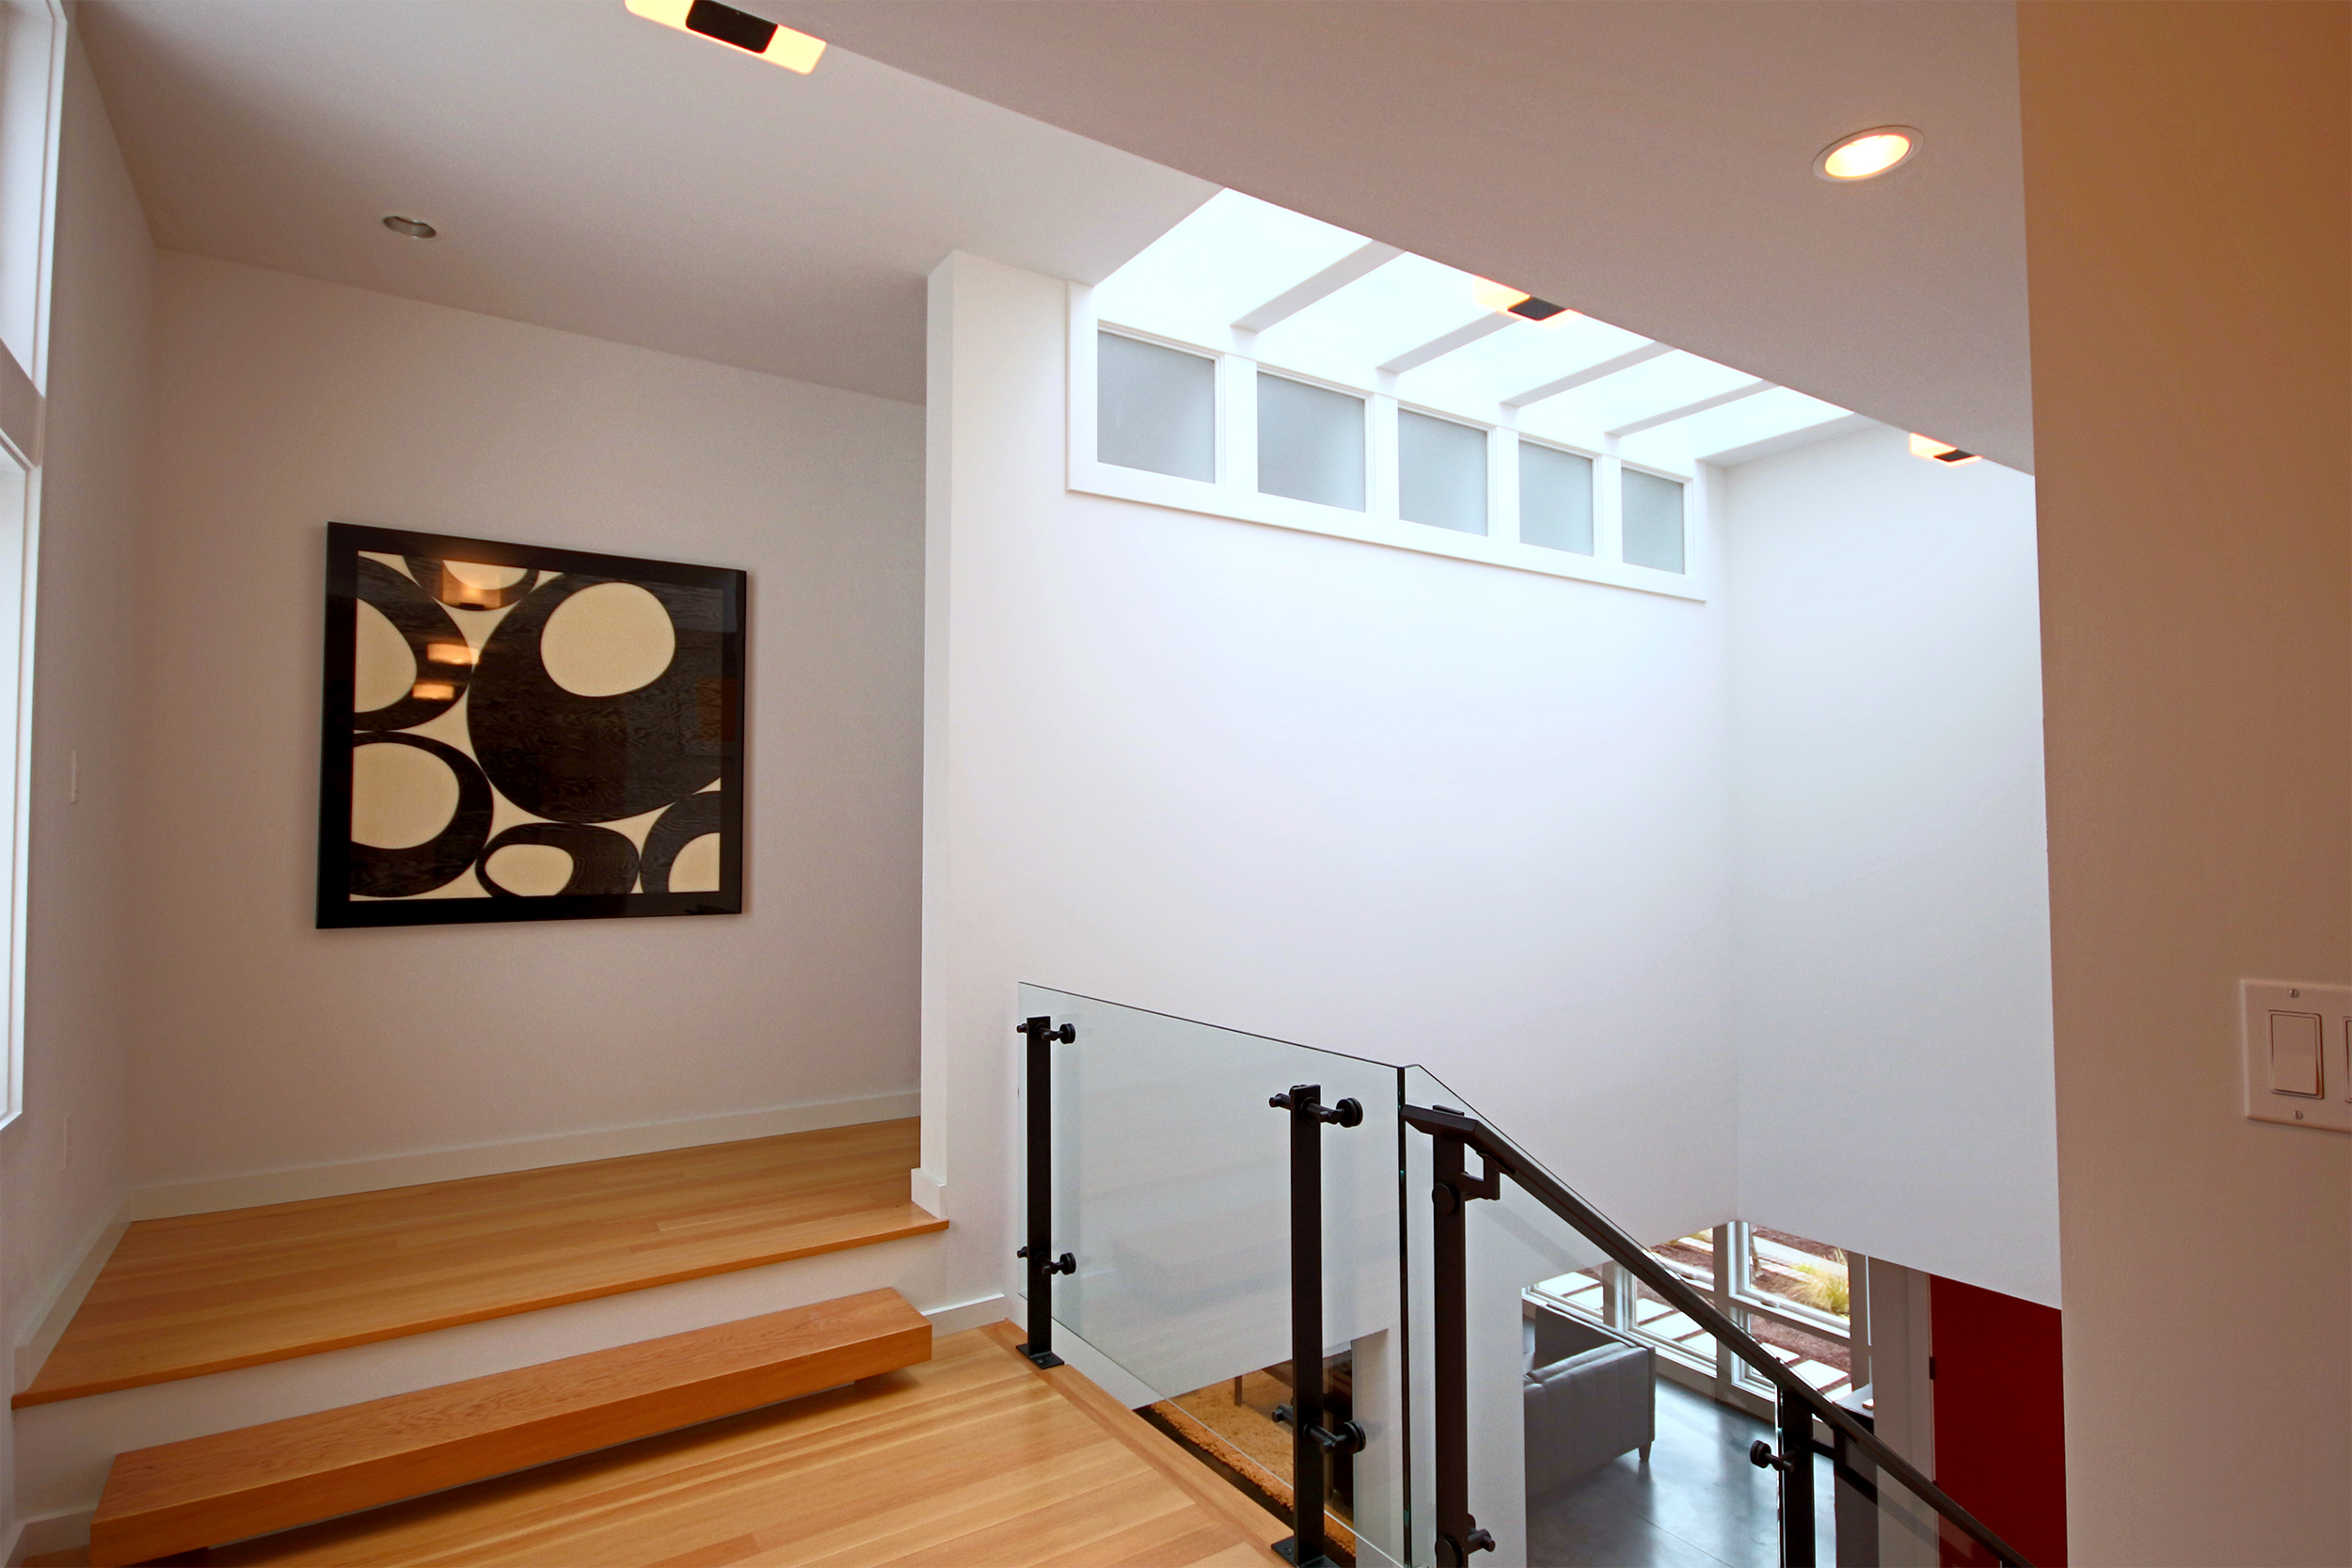 Here again, we chose to use the stair space as an opportunity to create a larger double height space in the  Double Box House . In this house, the space is closer to the entry, but still in the center of the building, so it brings lots of natural light down into main spaces that otherwise would be dark.